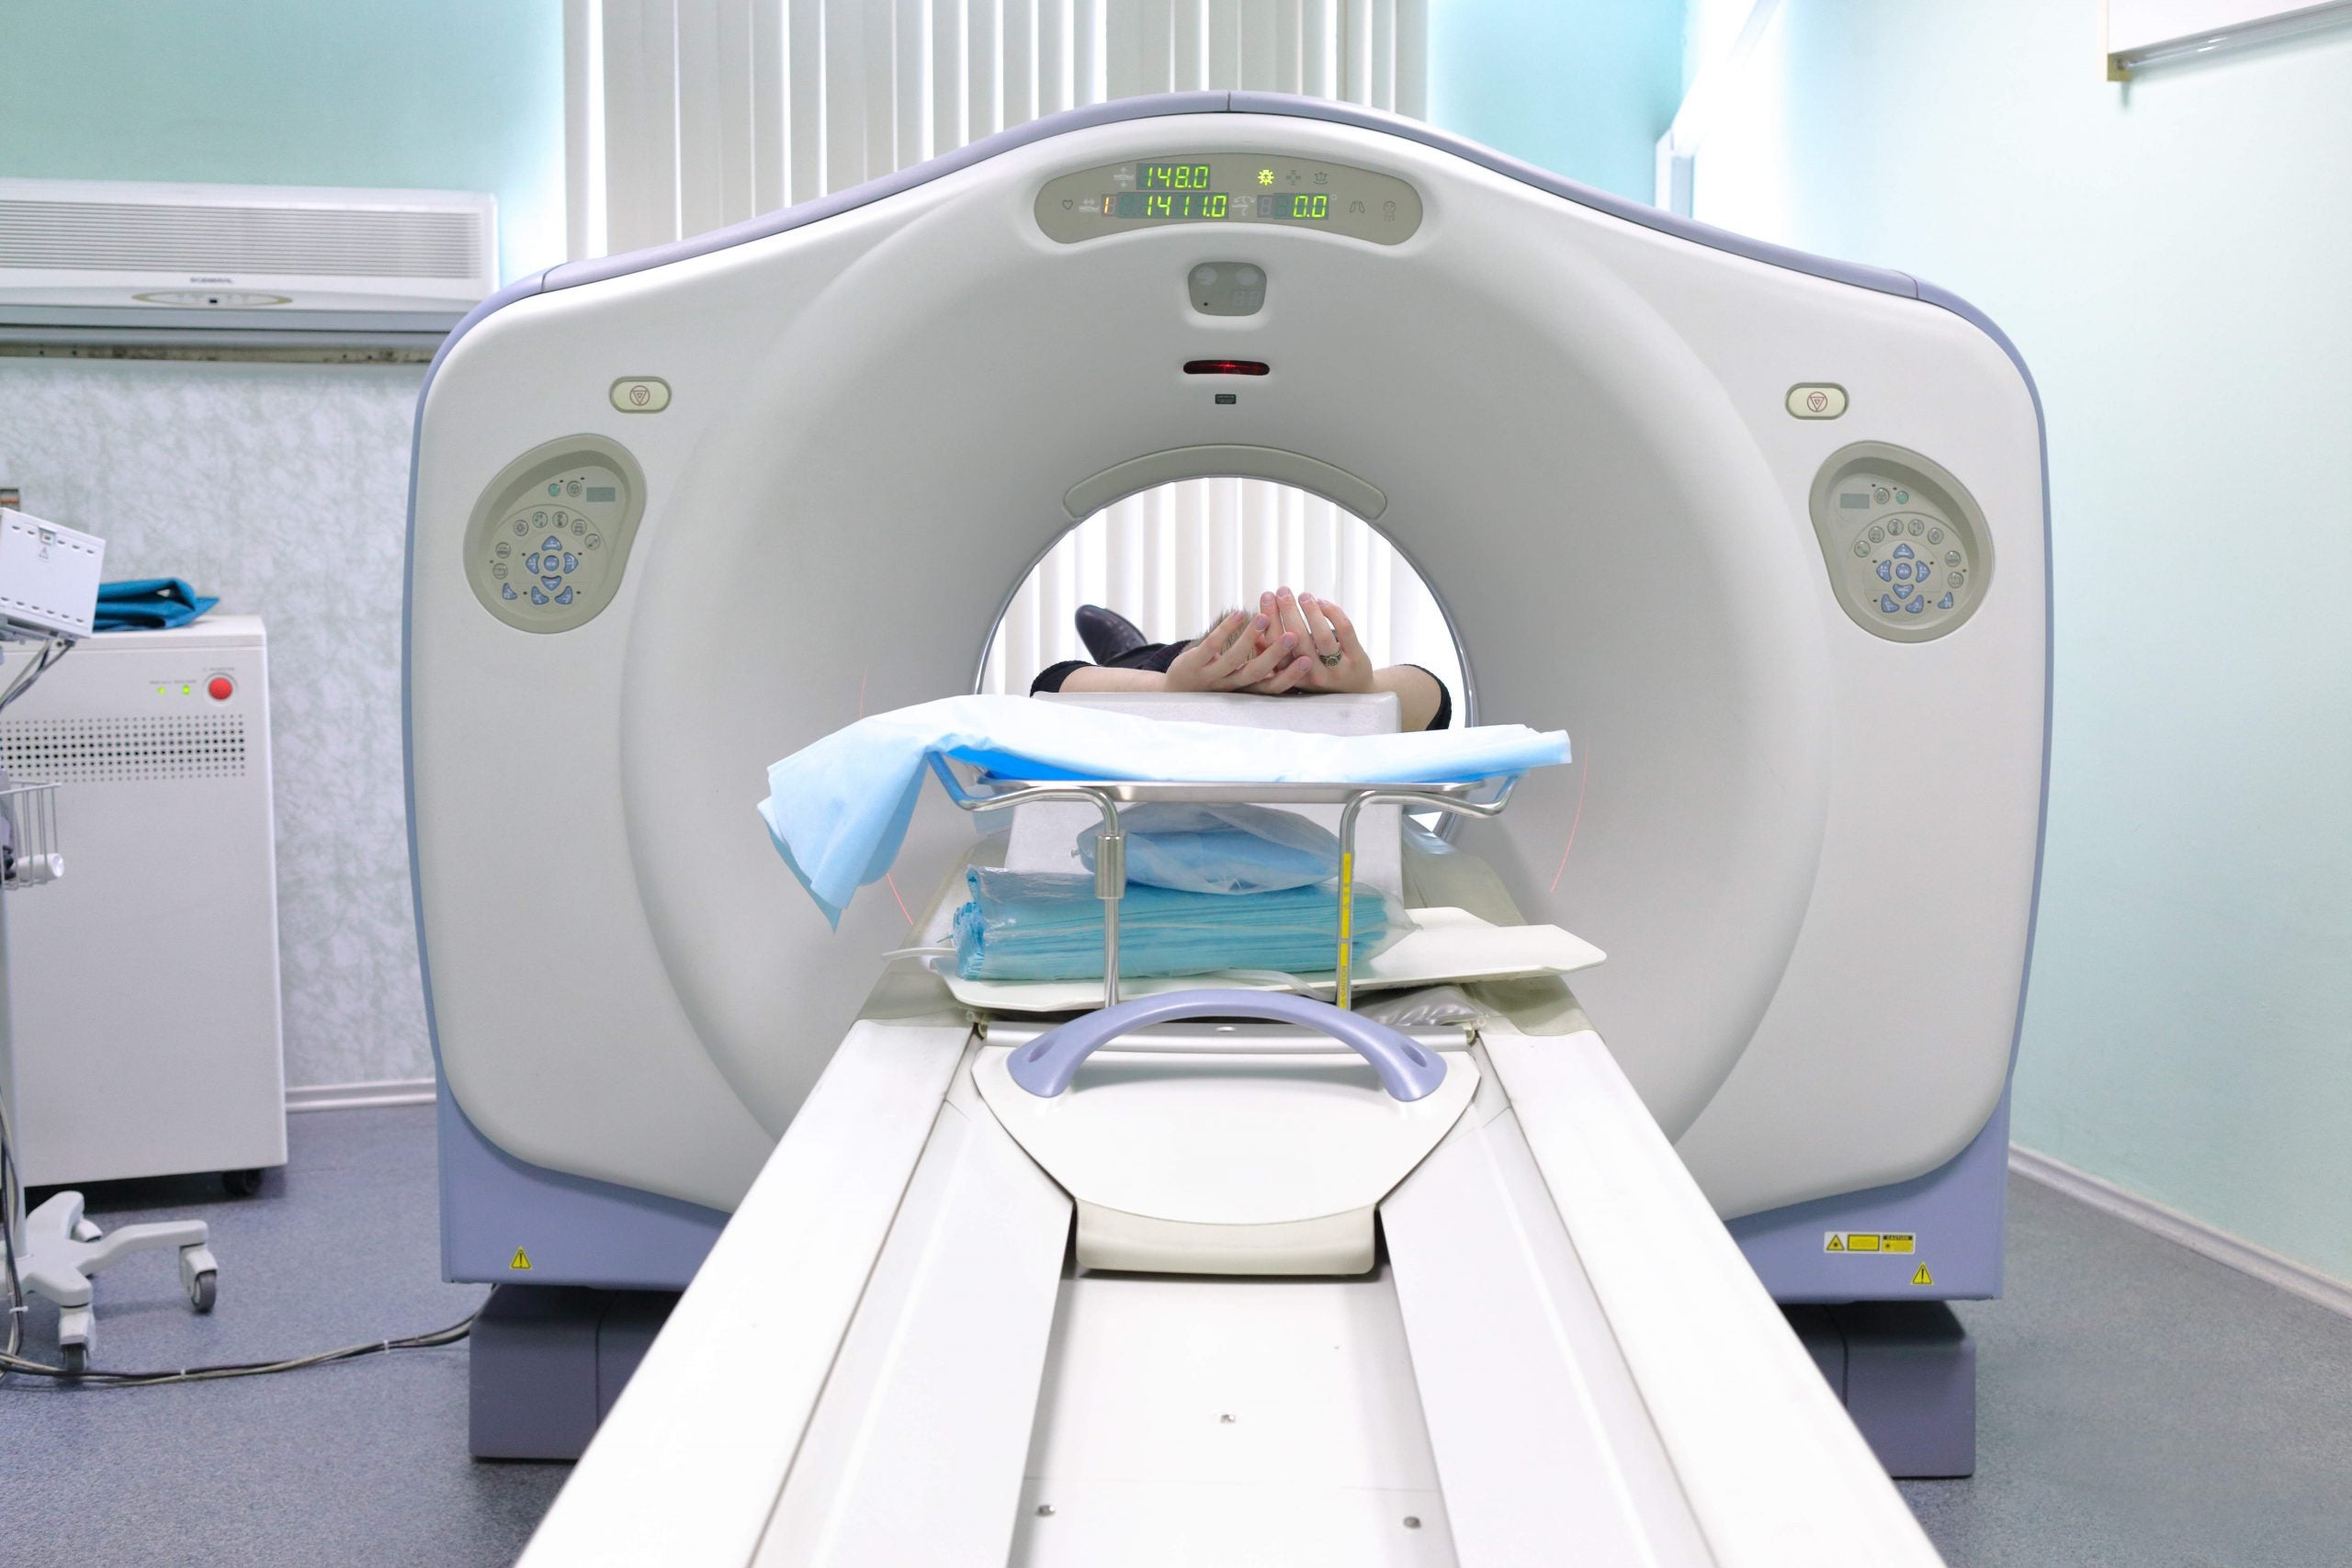 John Baron Q&A: Is Britain delivering on cancer treatment?